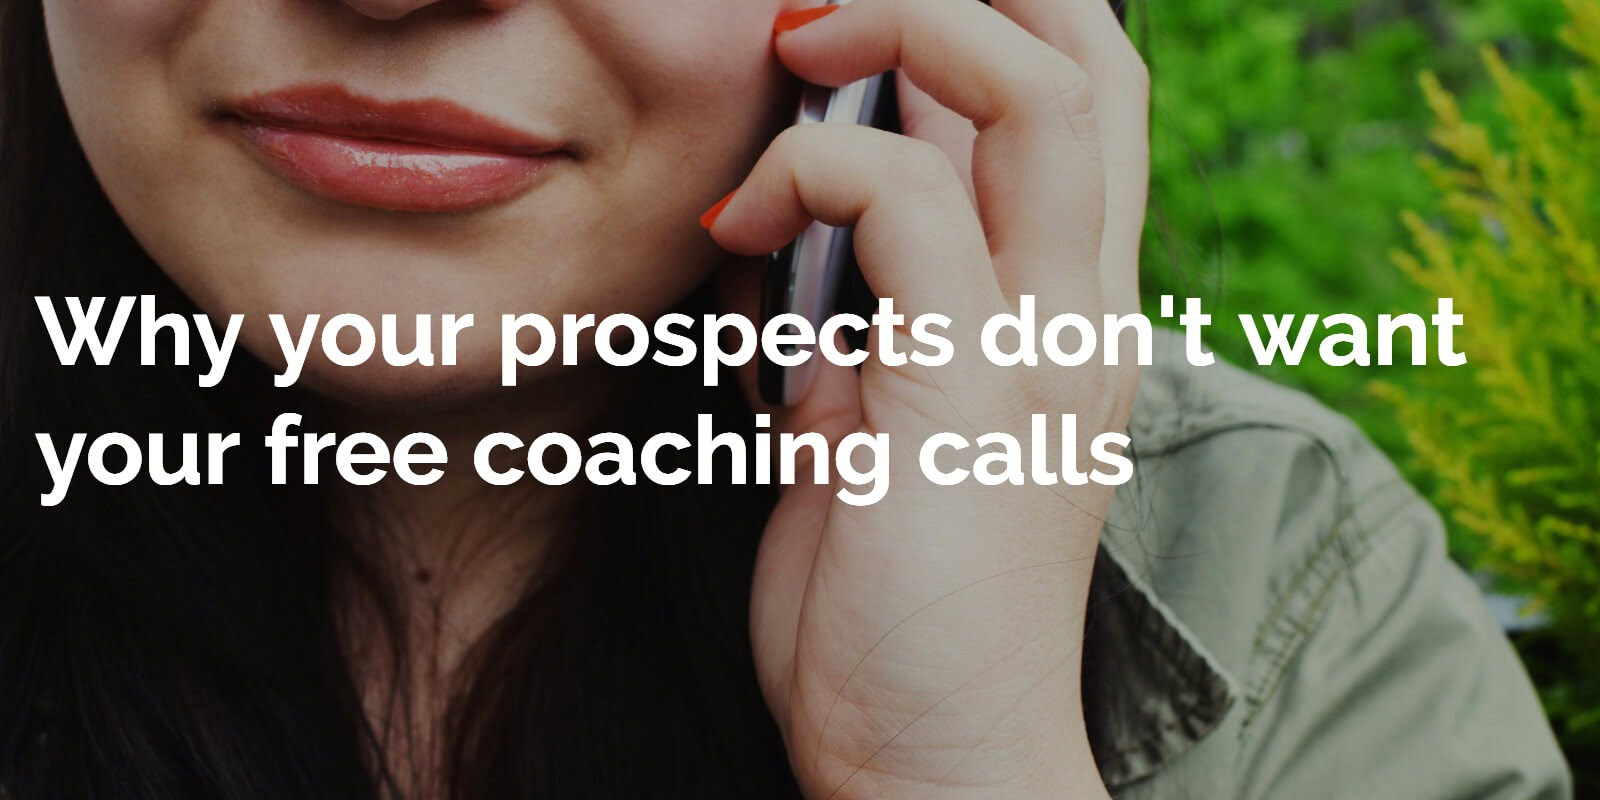 Why your prospects don't want your free coaching calls